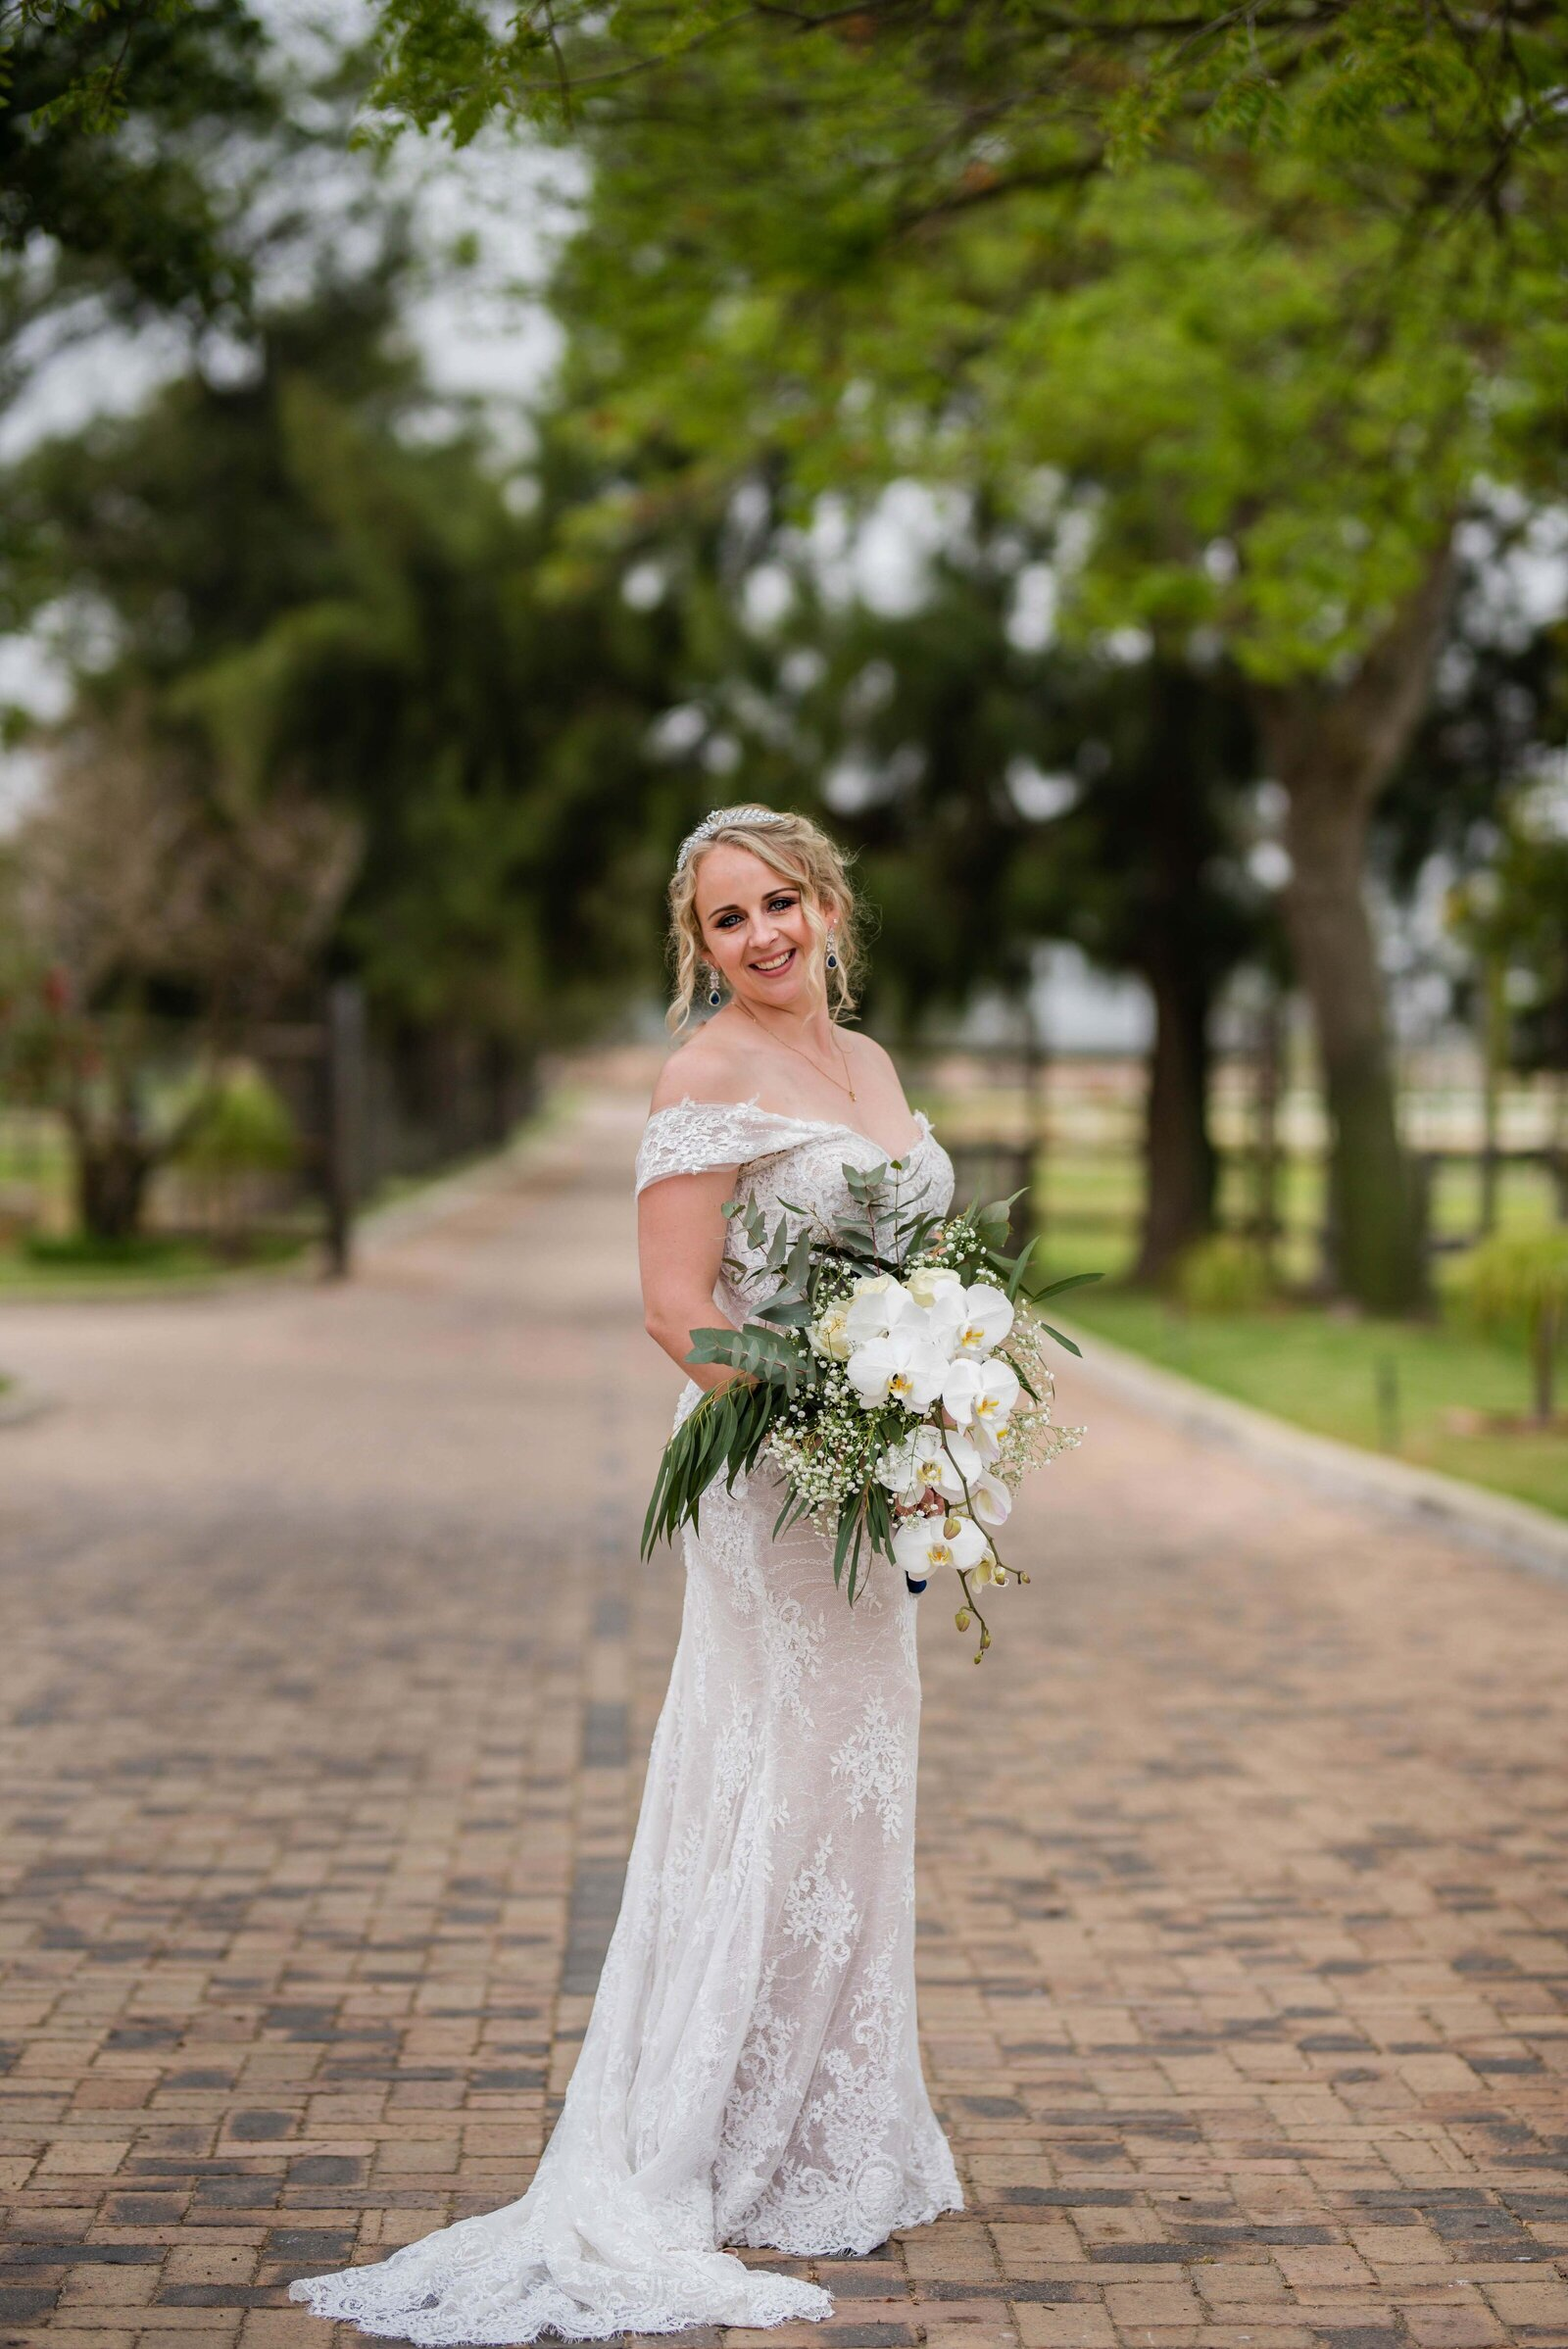 Wedding Photographer + Cape Town venue +Elri Photography+ Weddingdress (29)